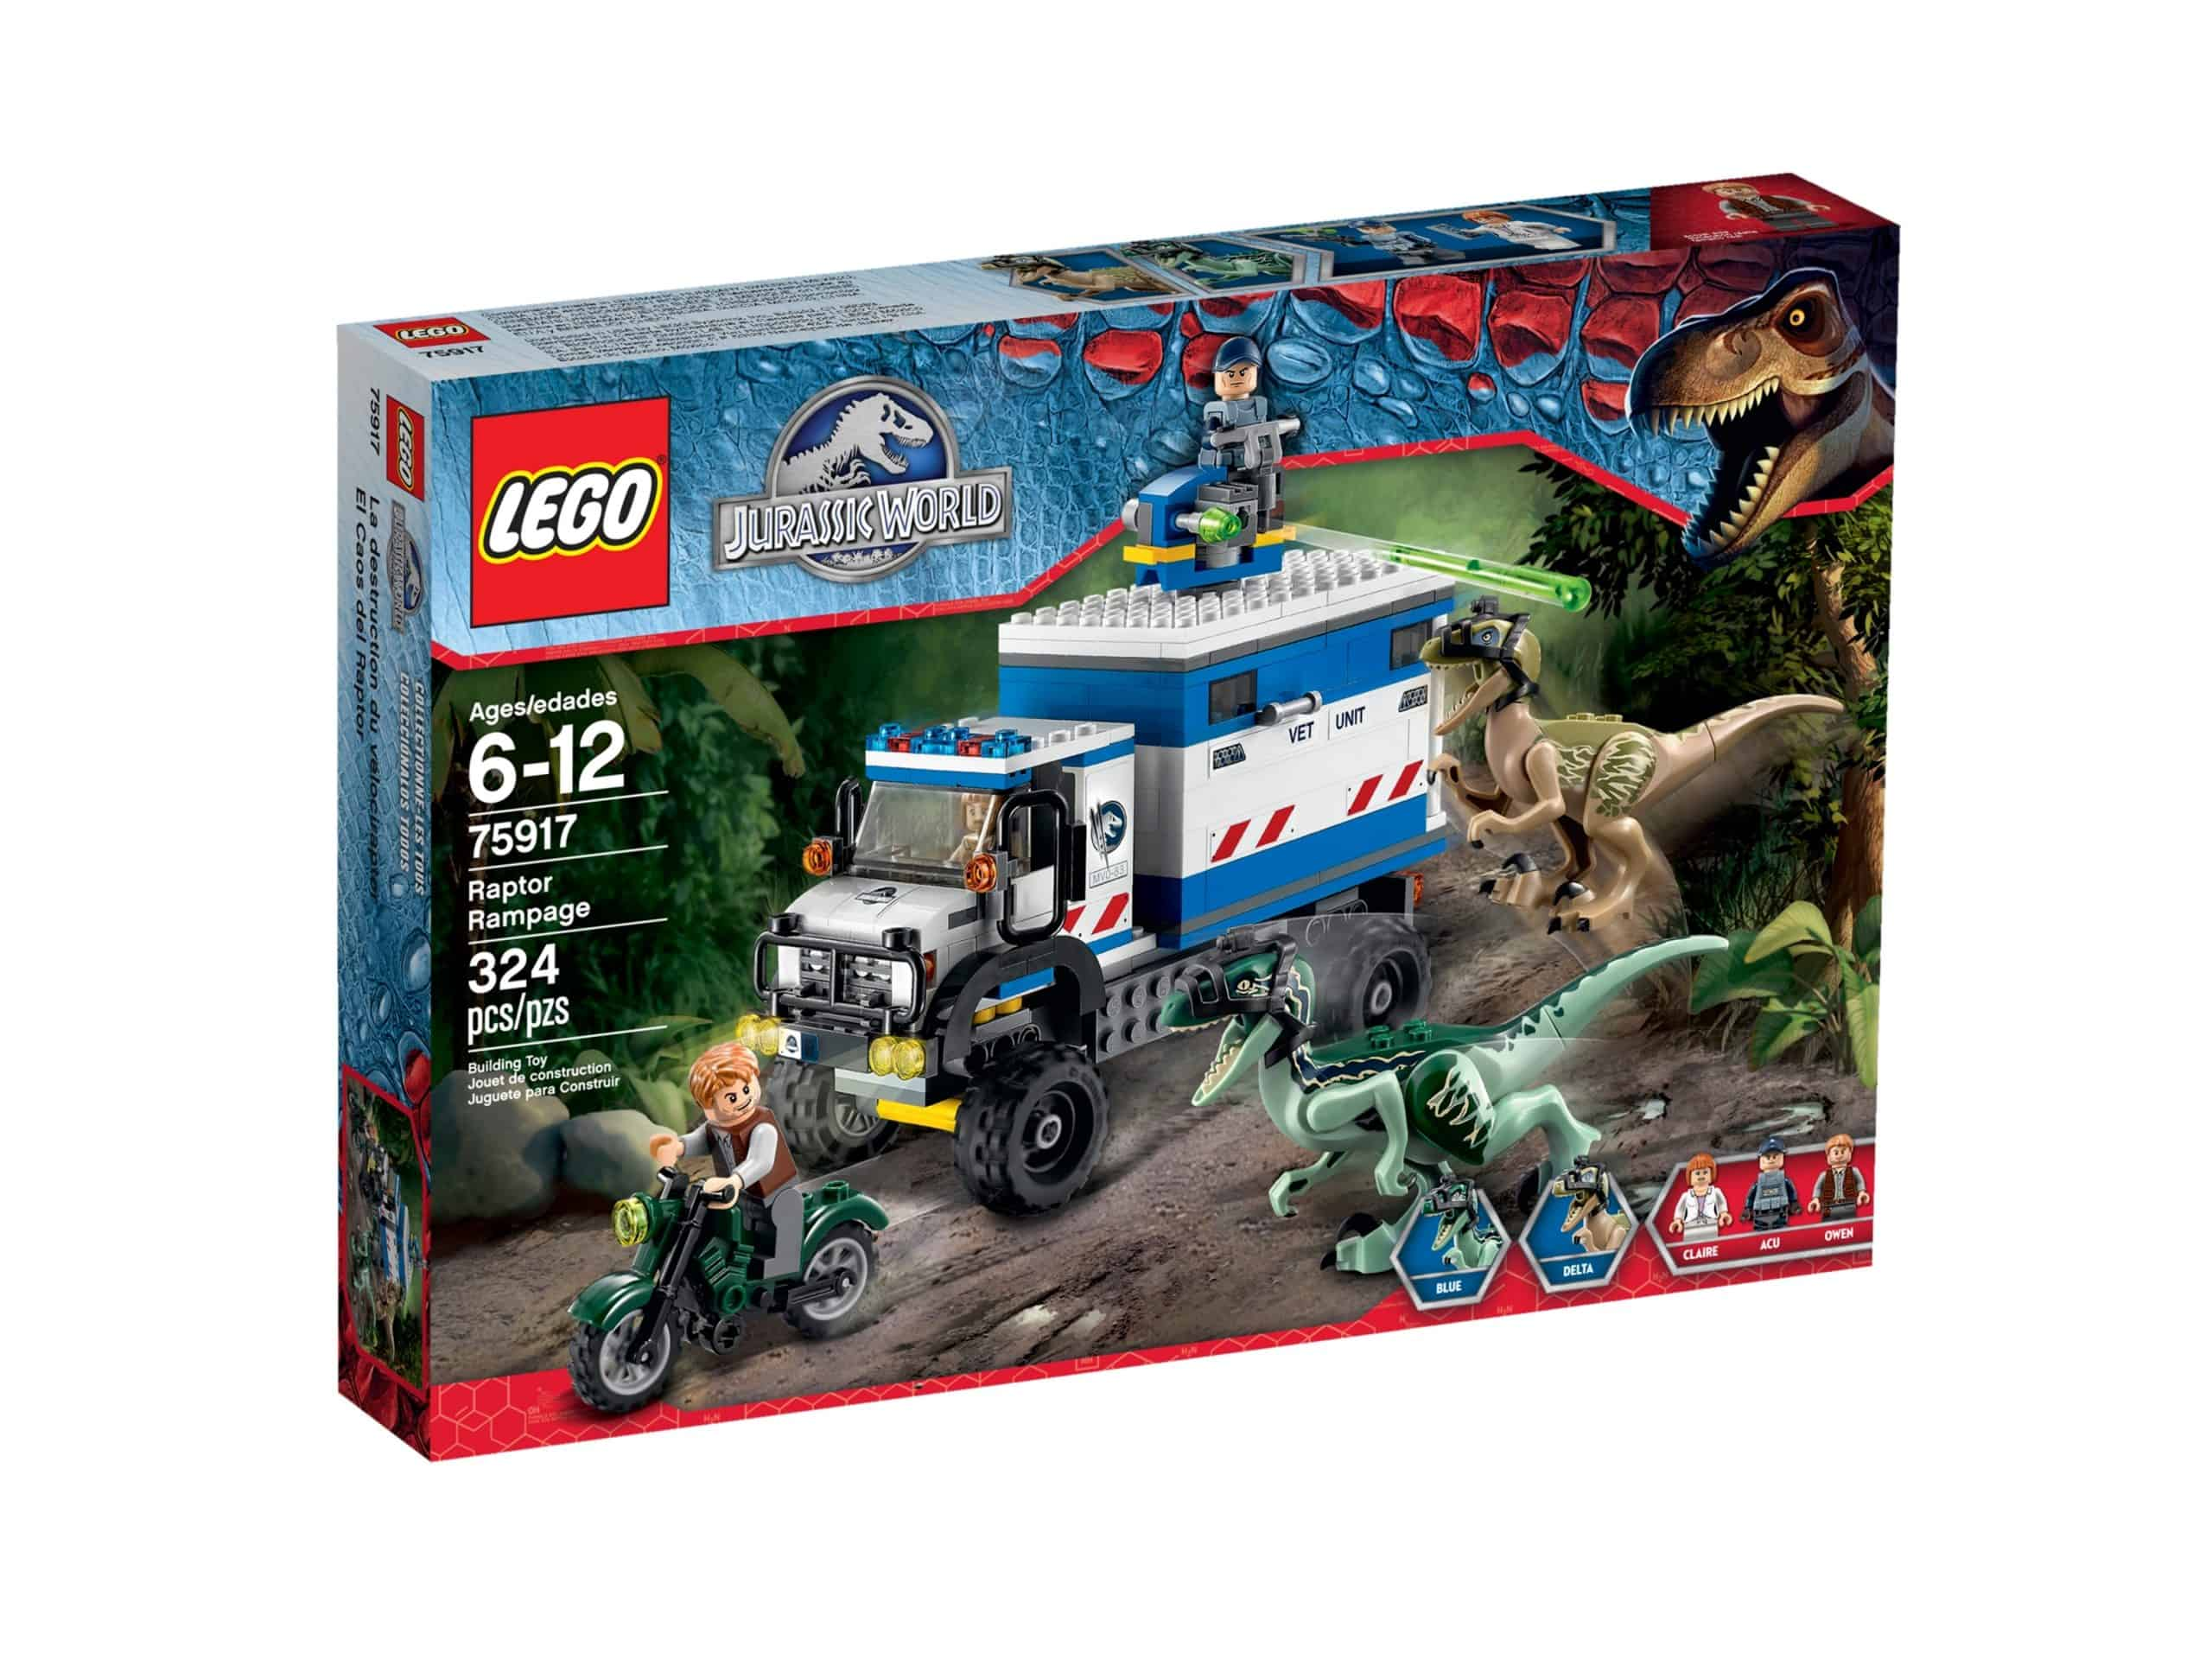 lego 75917 raptor randale scaled